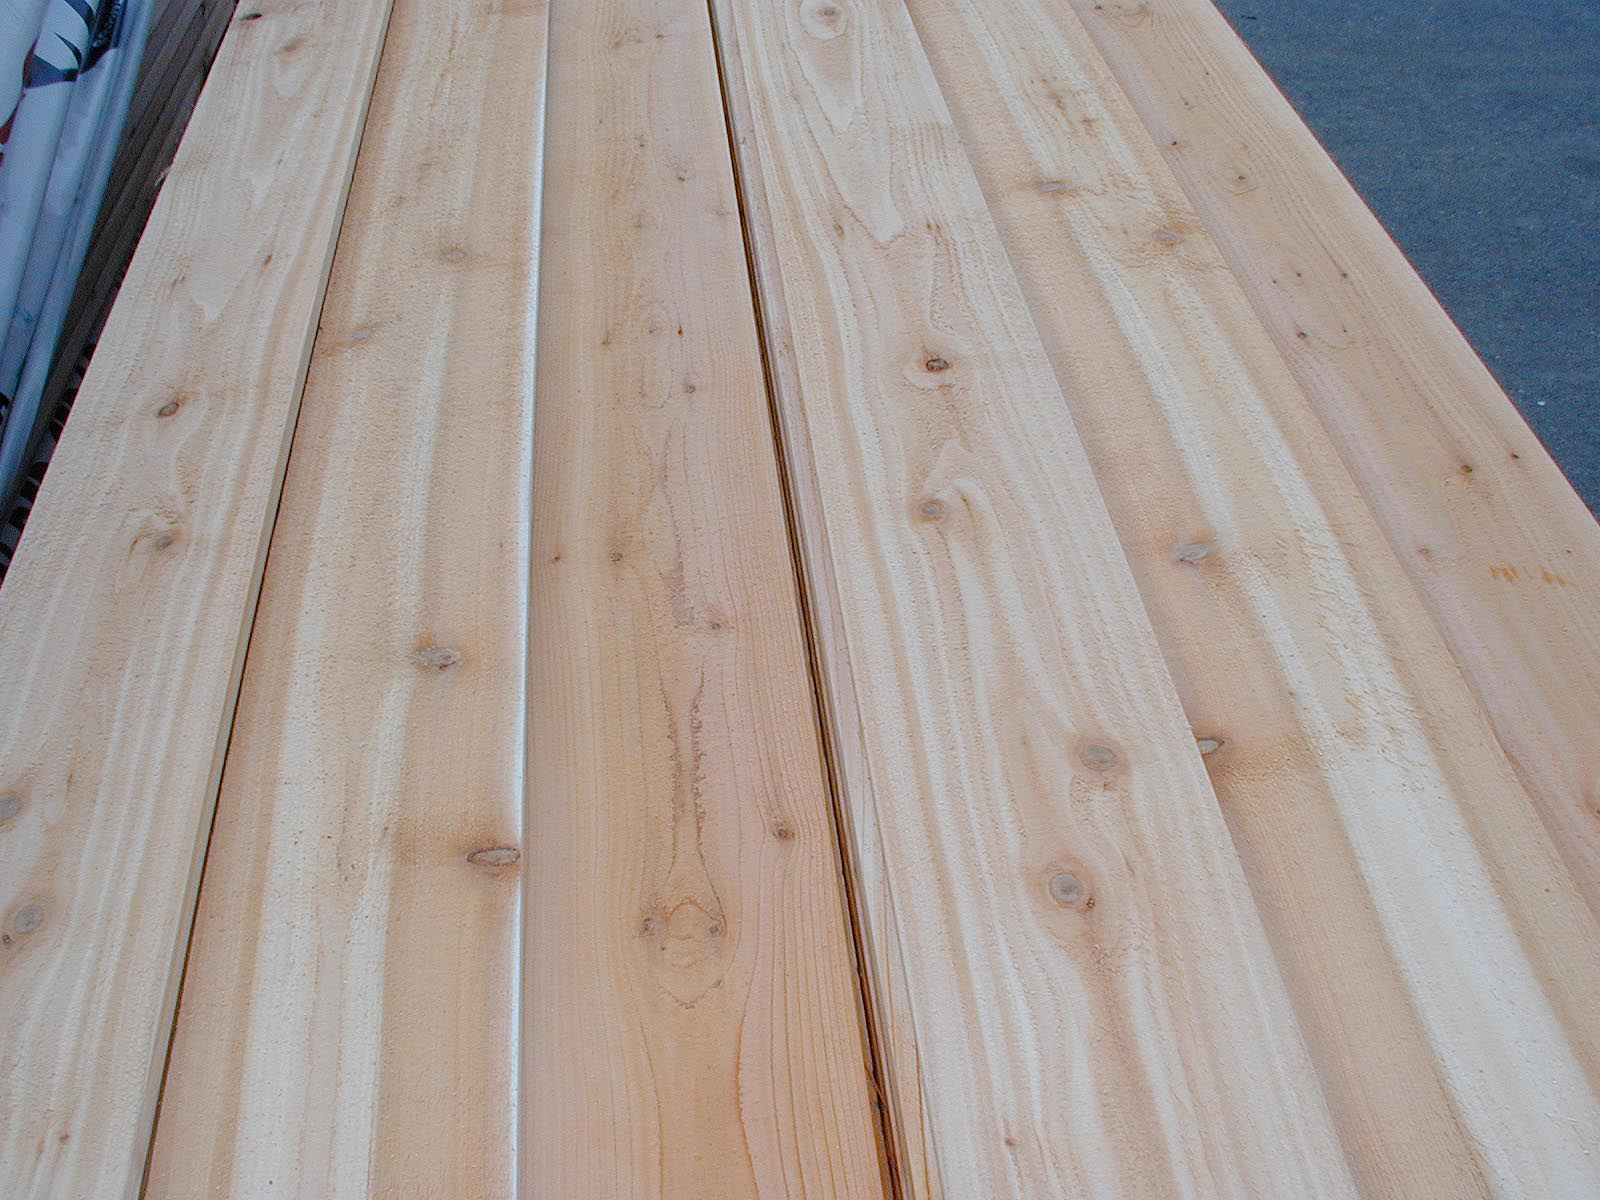 SELECT TIGHT KNOT : WESTERN RED CEDAR